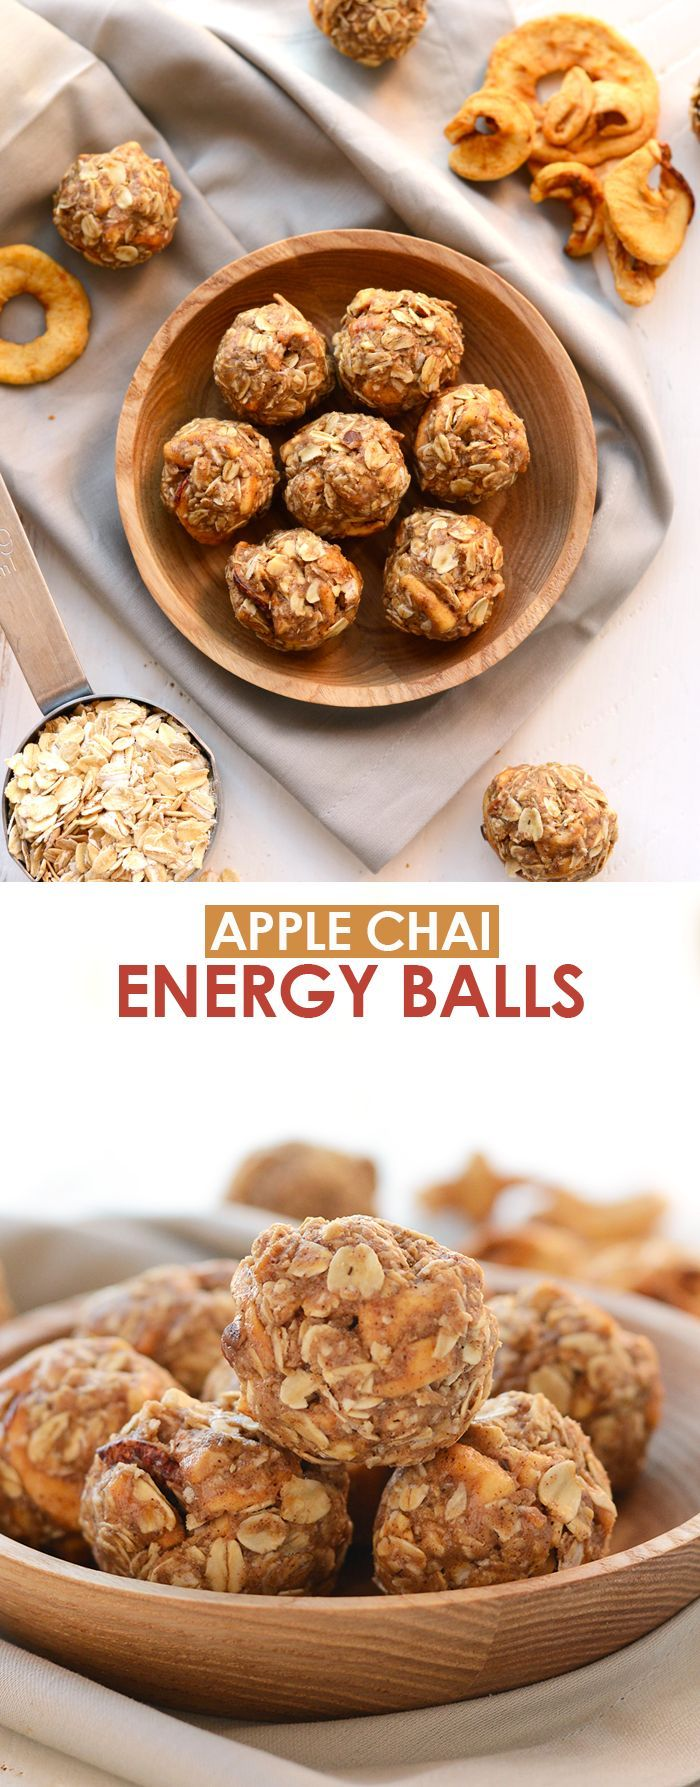 These Apple Chai Energy Balls are made with rolled oats, dried apples, chai spices, and an almond butter base for a healthy fall sweet treat!